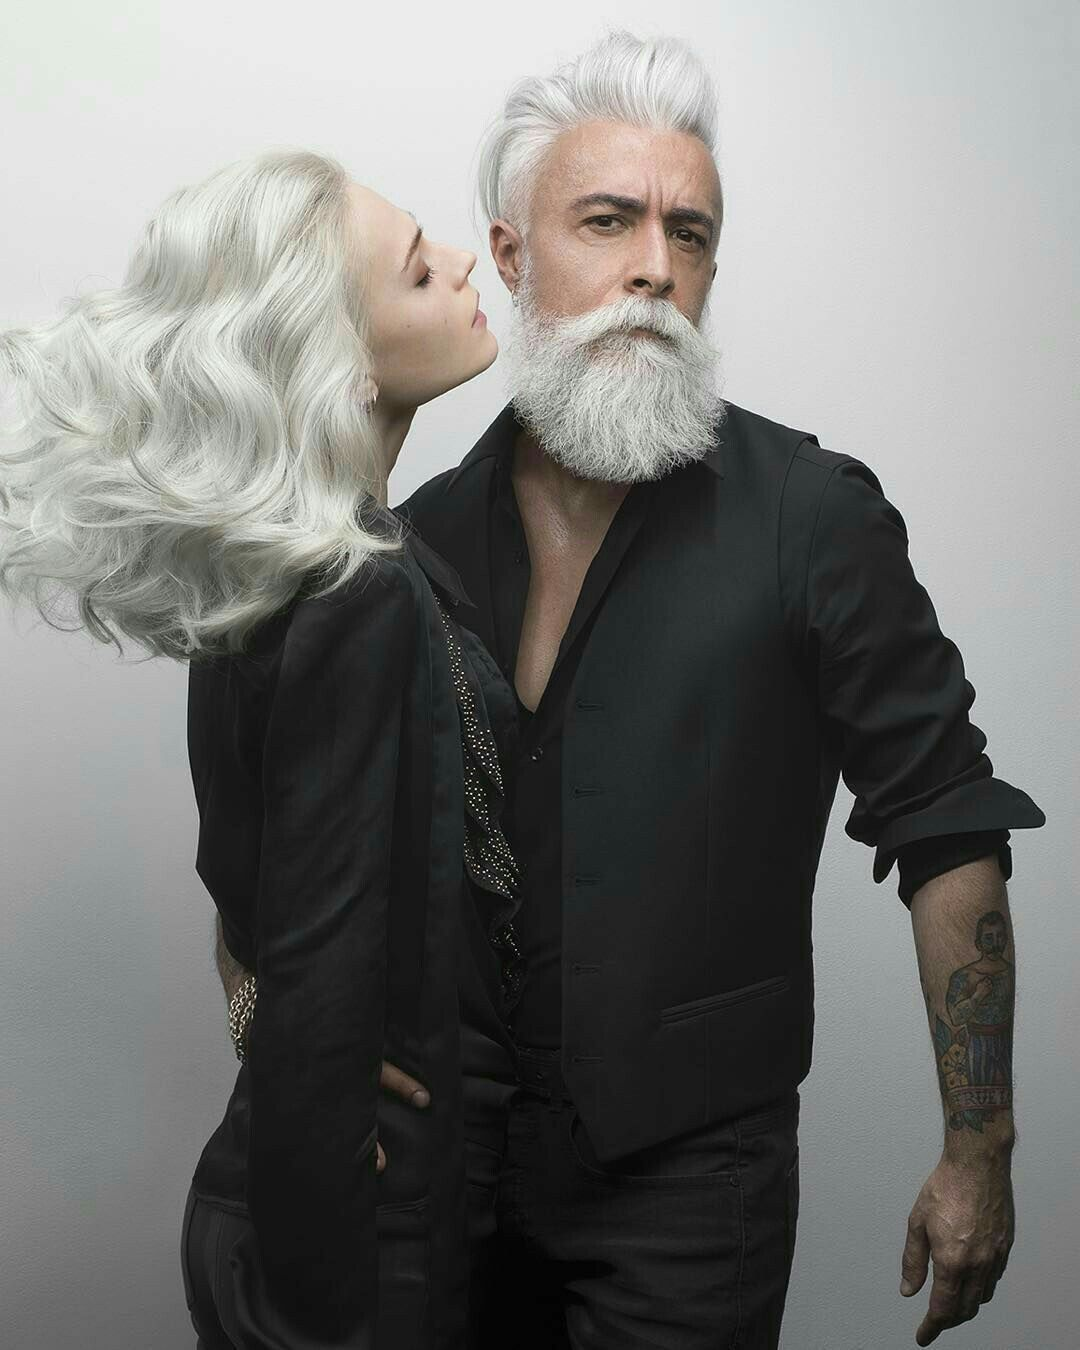 Coiffure Homme Blond Platine Adaangellanderson Beards Pinterest Barbe Cheveux